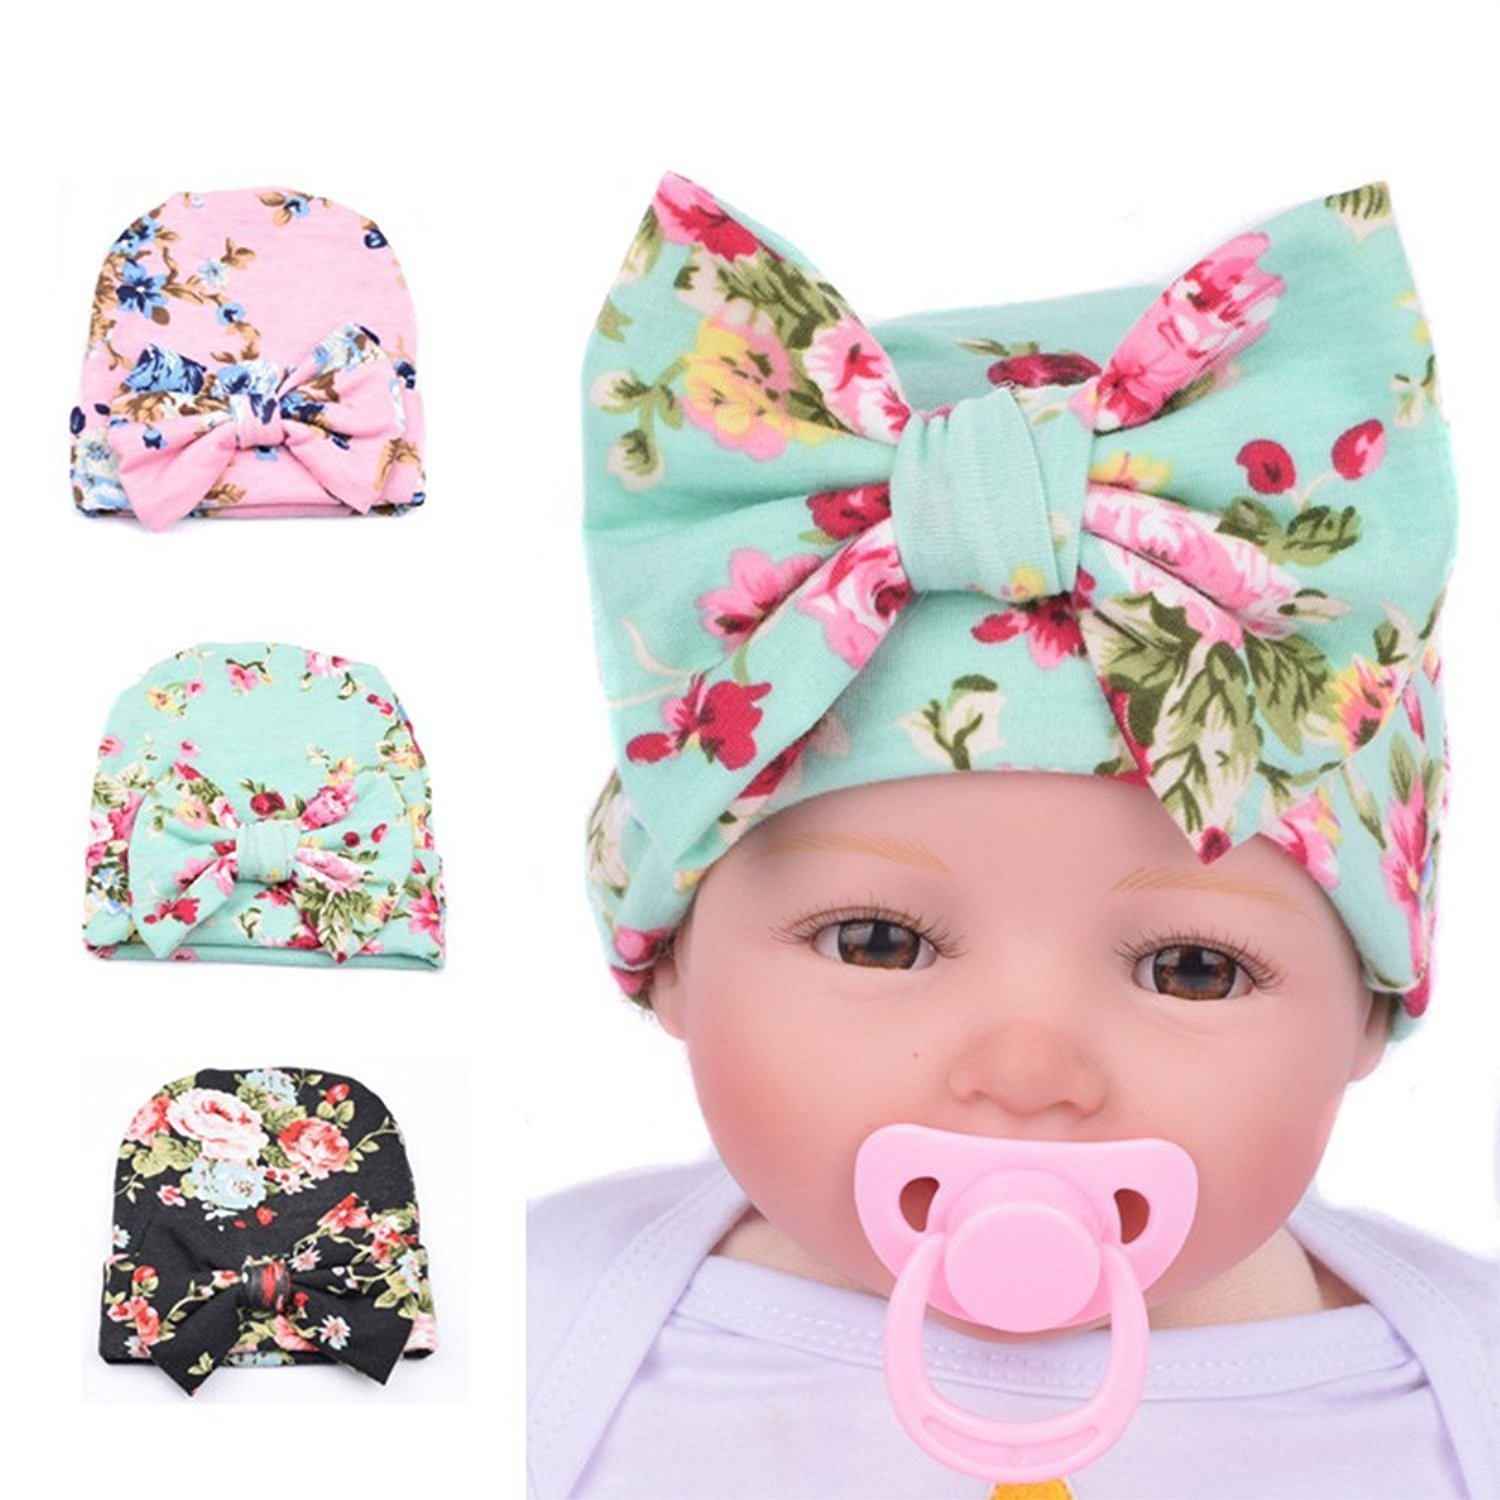 Baby Boy//Girl Pack of 2 x Cotton New Born Kids Hat//Cap,0-6 months,Yellow,Green